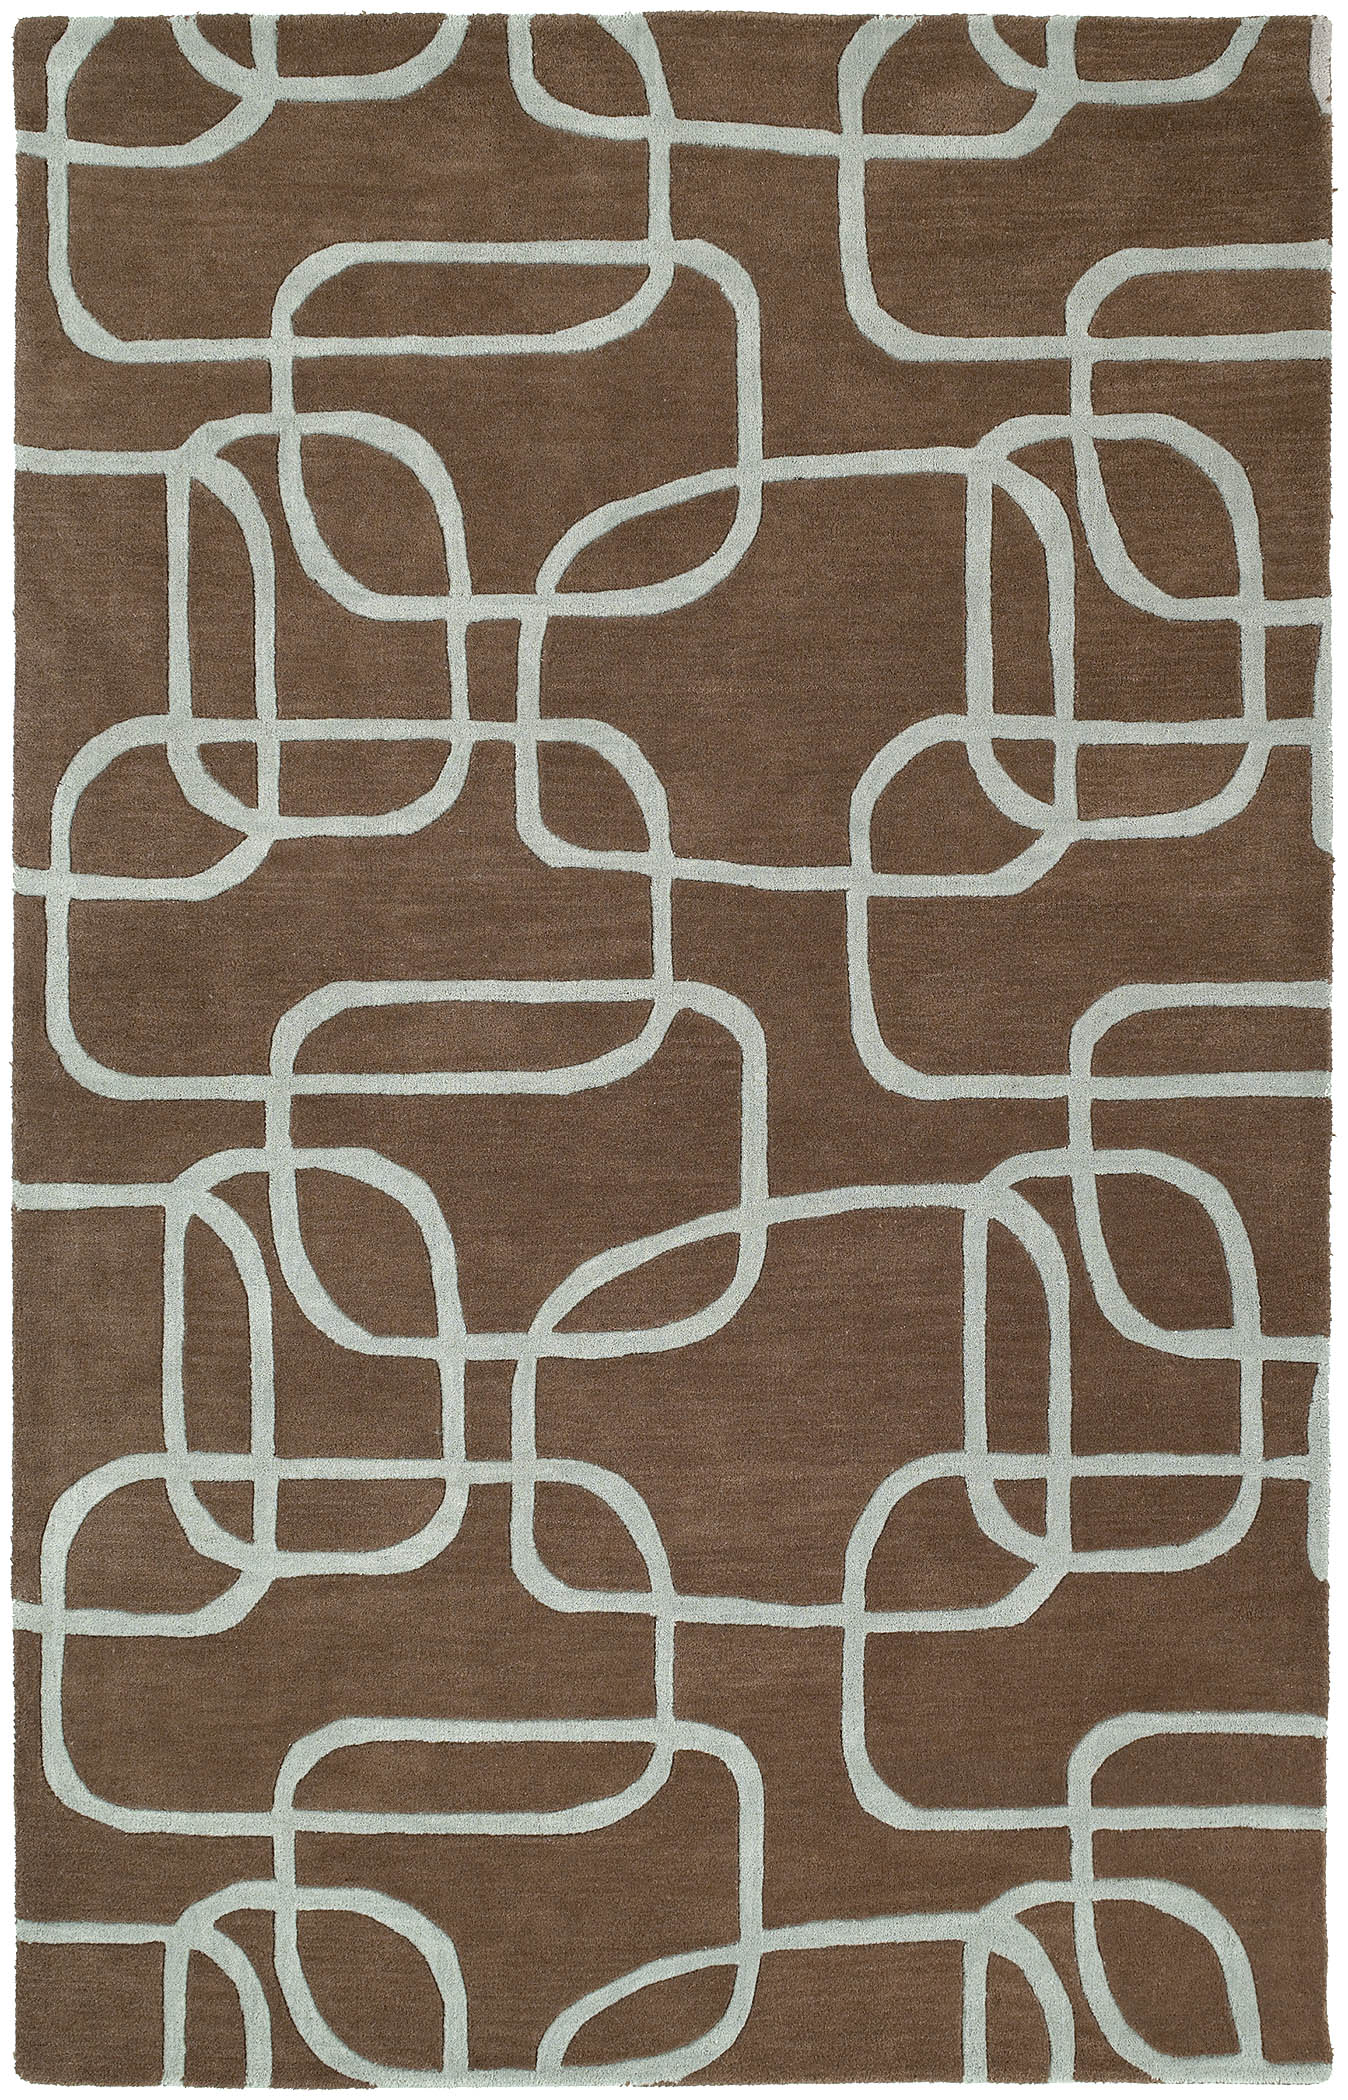 Astronomy 3402 Nebula Brown 49 Rug by Kaleen